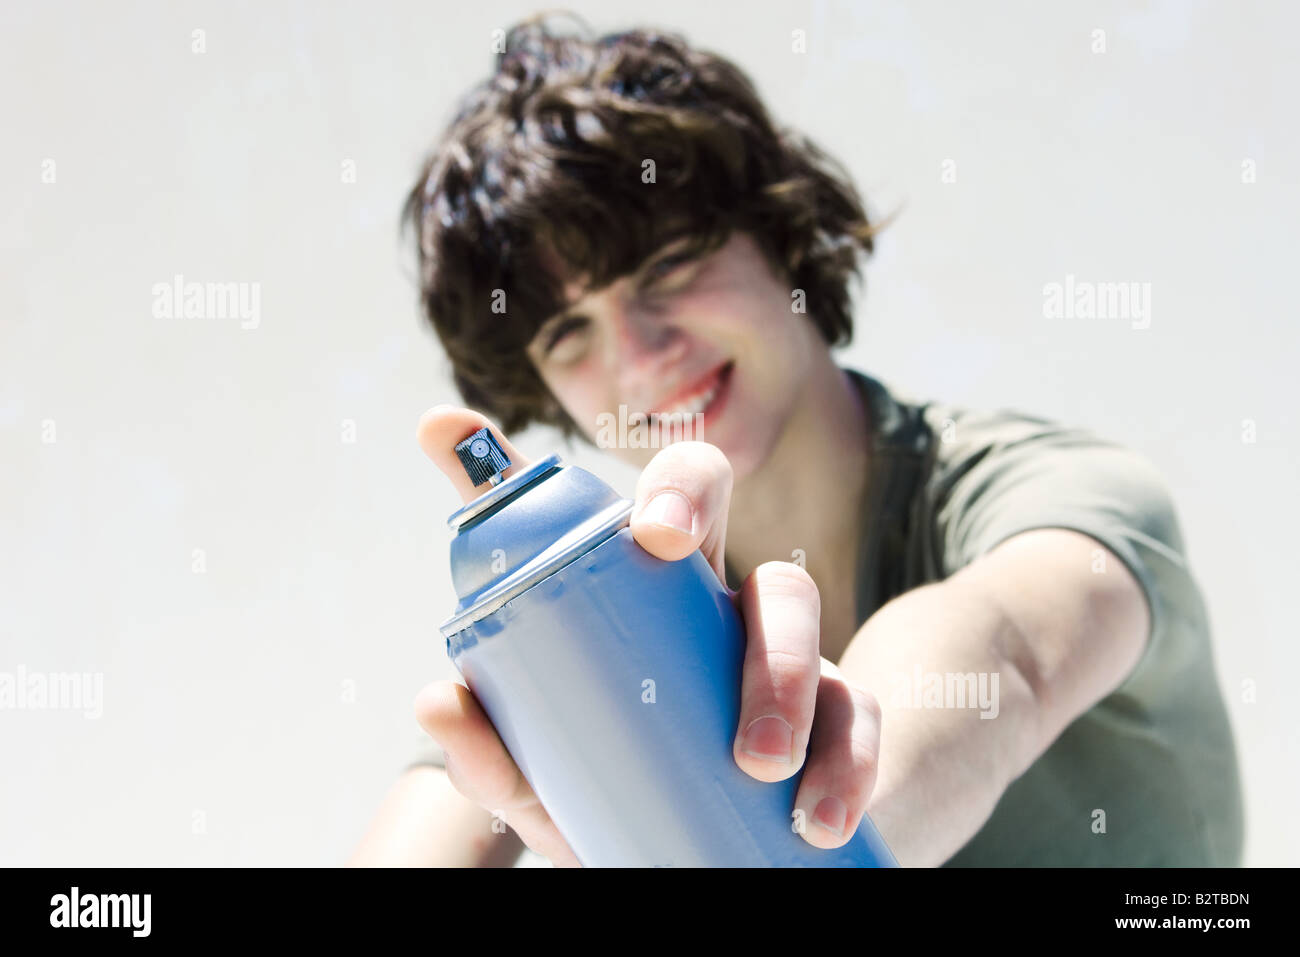 Teenage boy pointing can of spray paint at camera, focus on the foreground - Stock Image